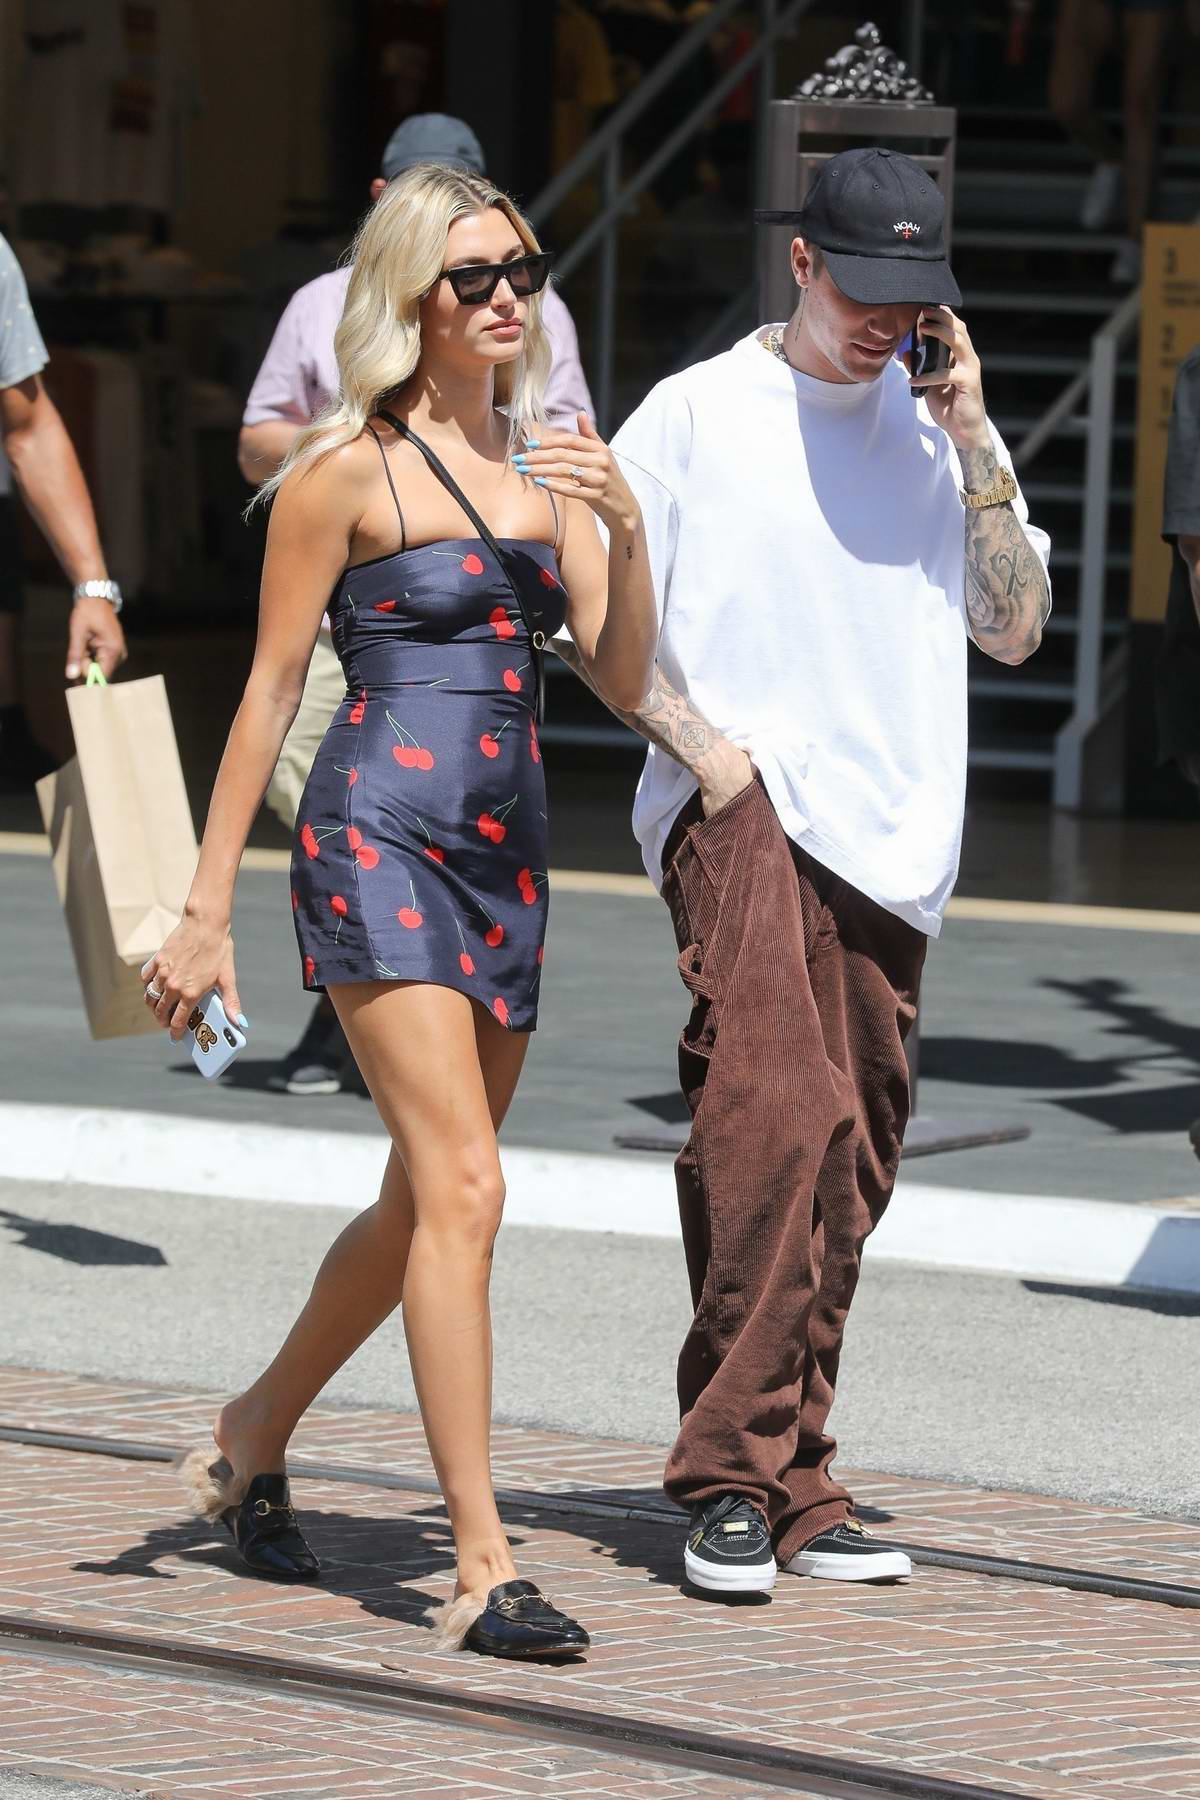 Hailey Baldwin wears a blue cherry print minidress while out with Justin Bieber at the Grove in Los Angeles